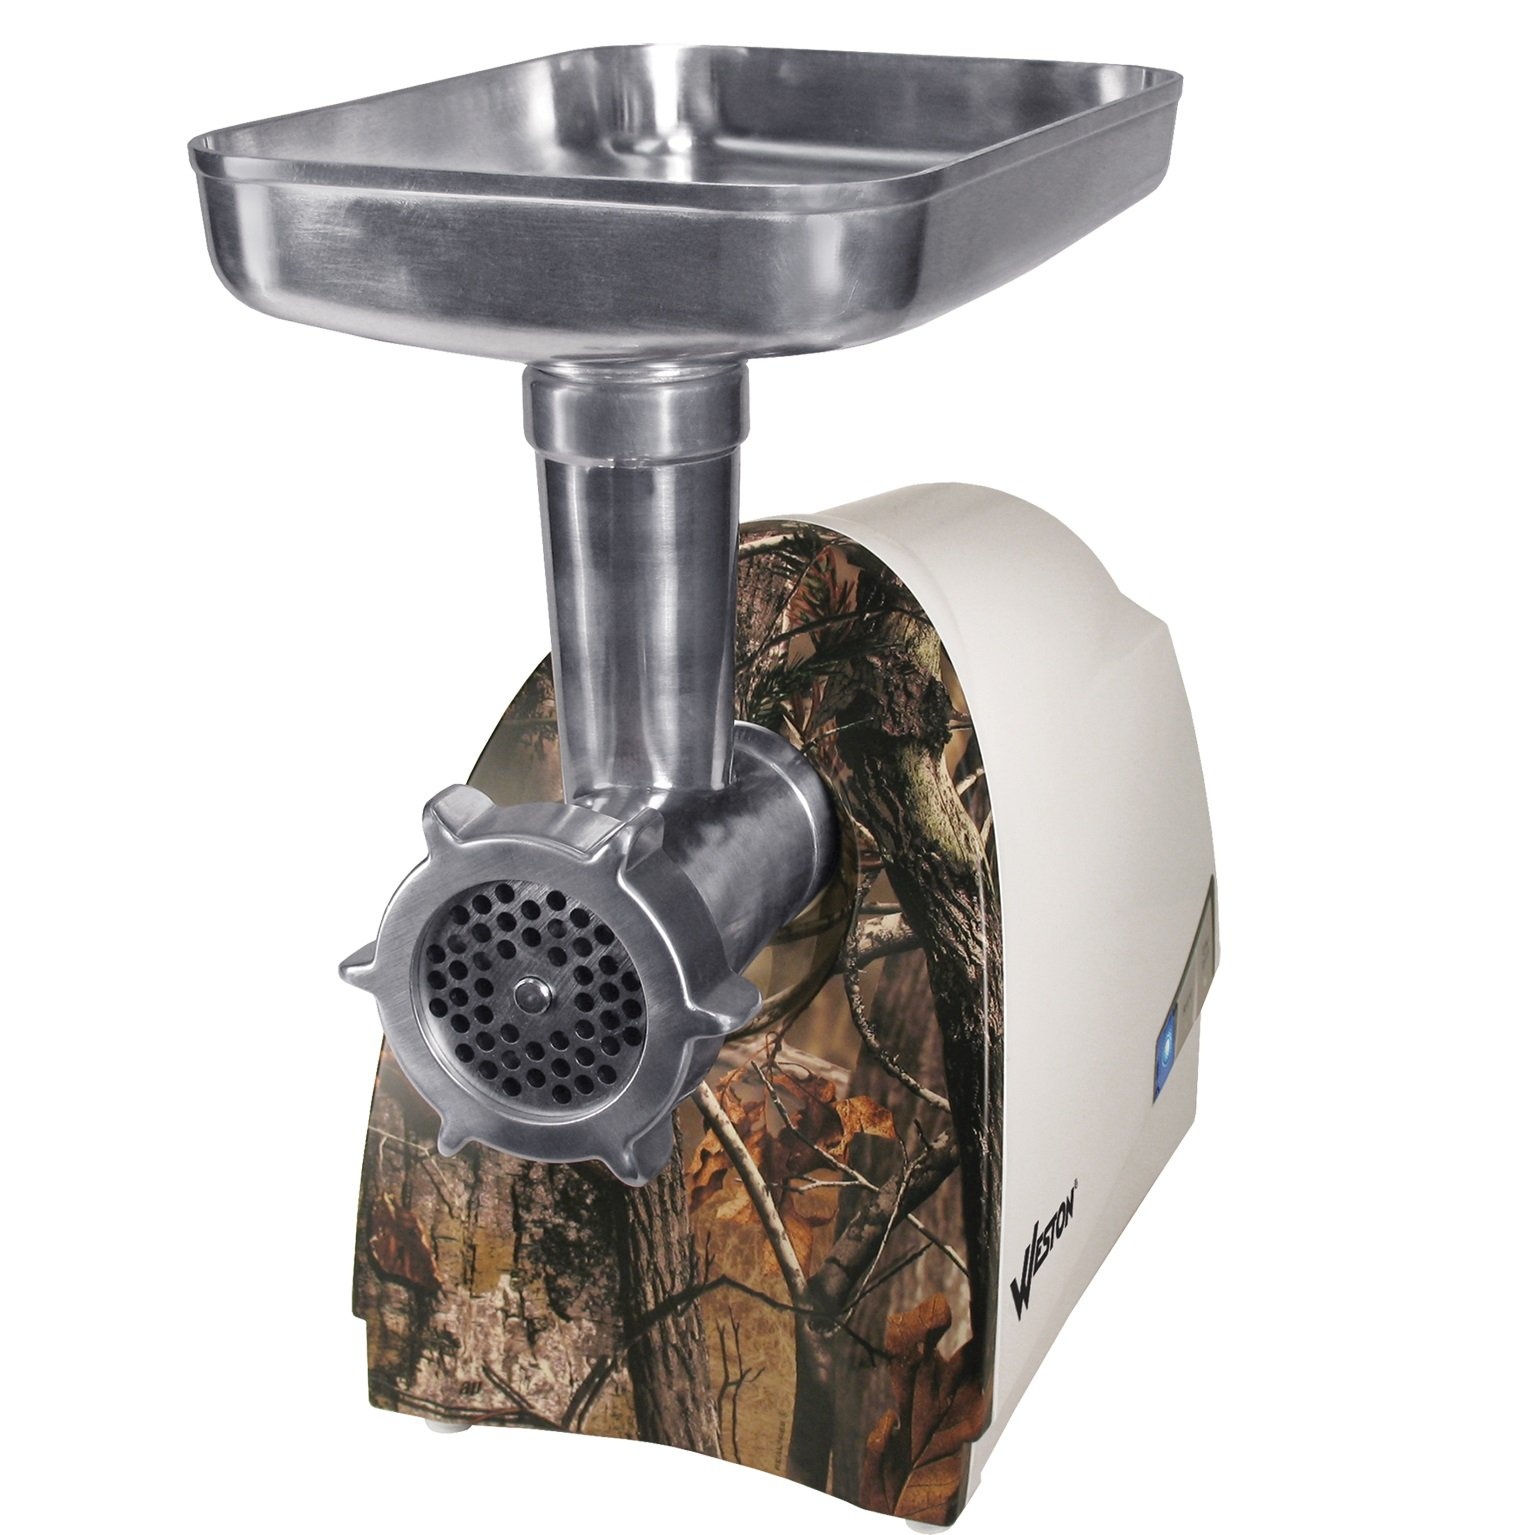 Weston 575 Watt Realtree Electric Heavy Duty Grinder, Silver by Weston